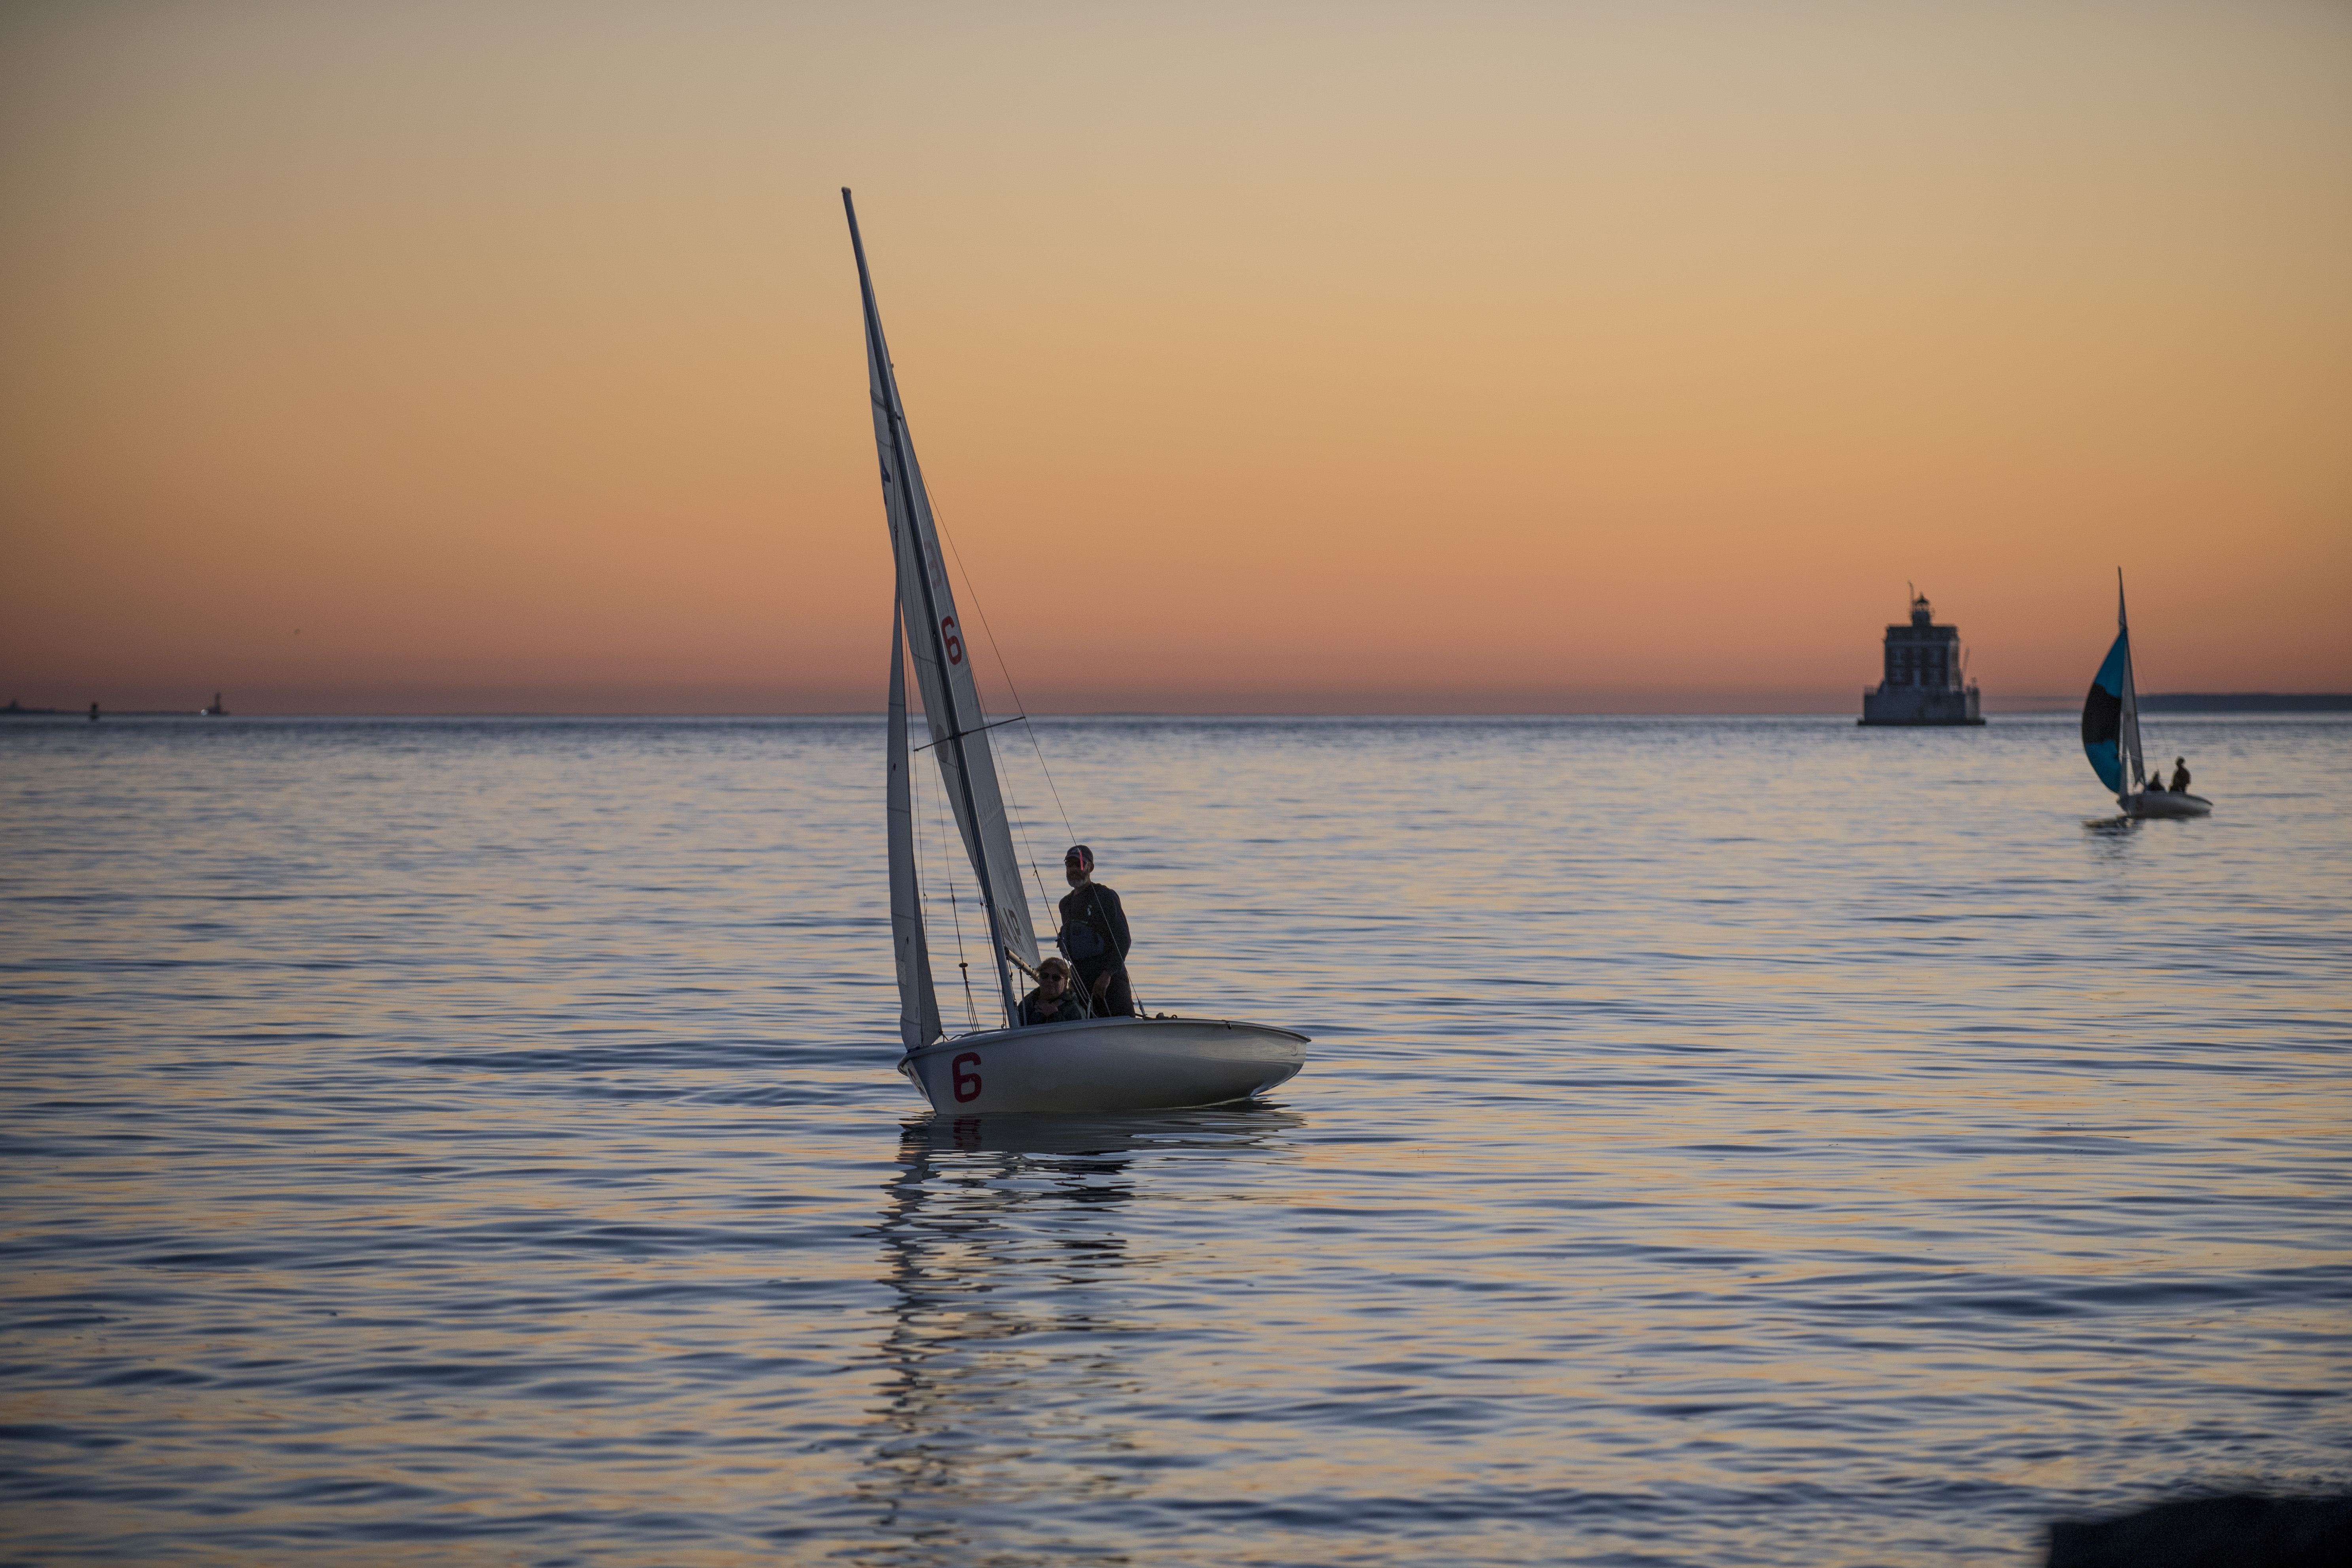 A sailboat in Long Island Sound at sunset